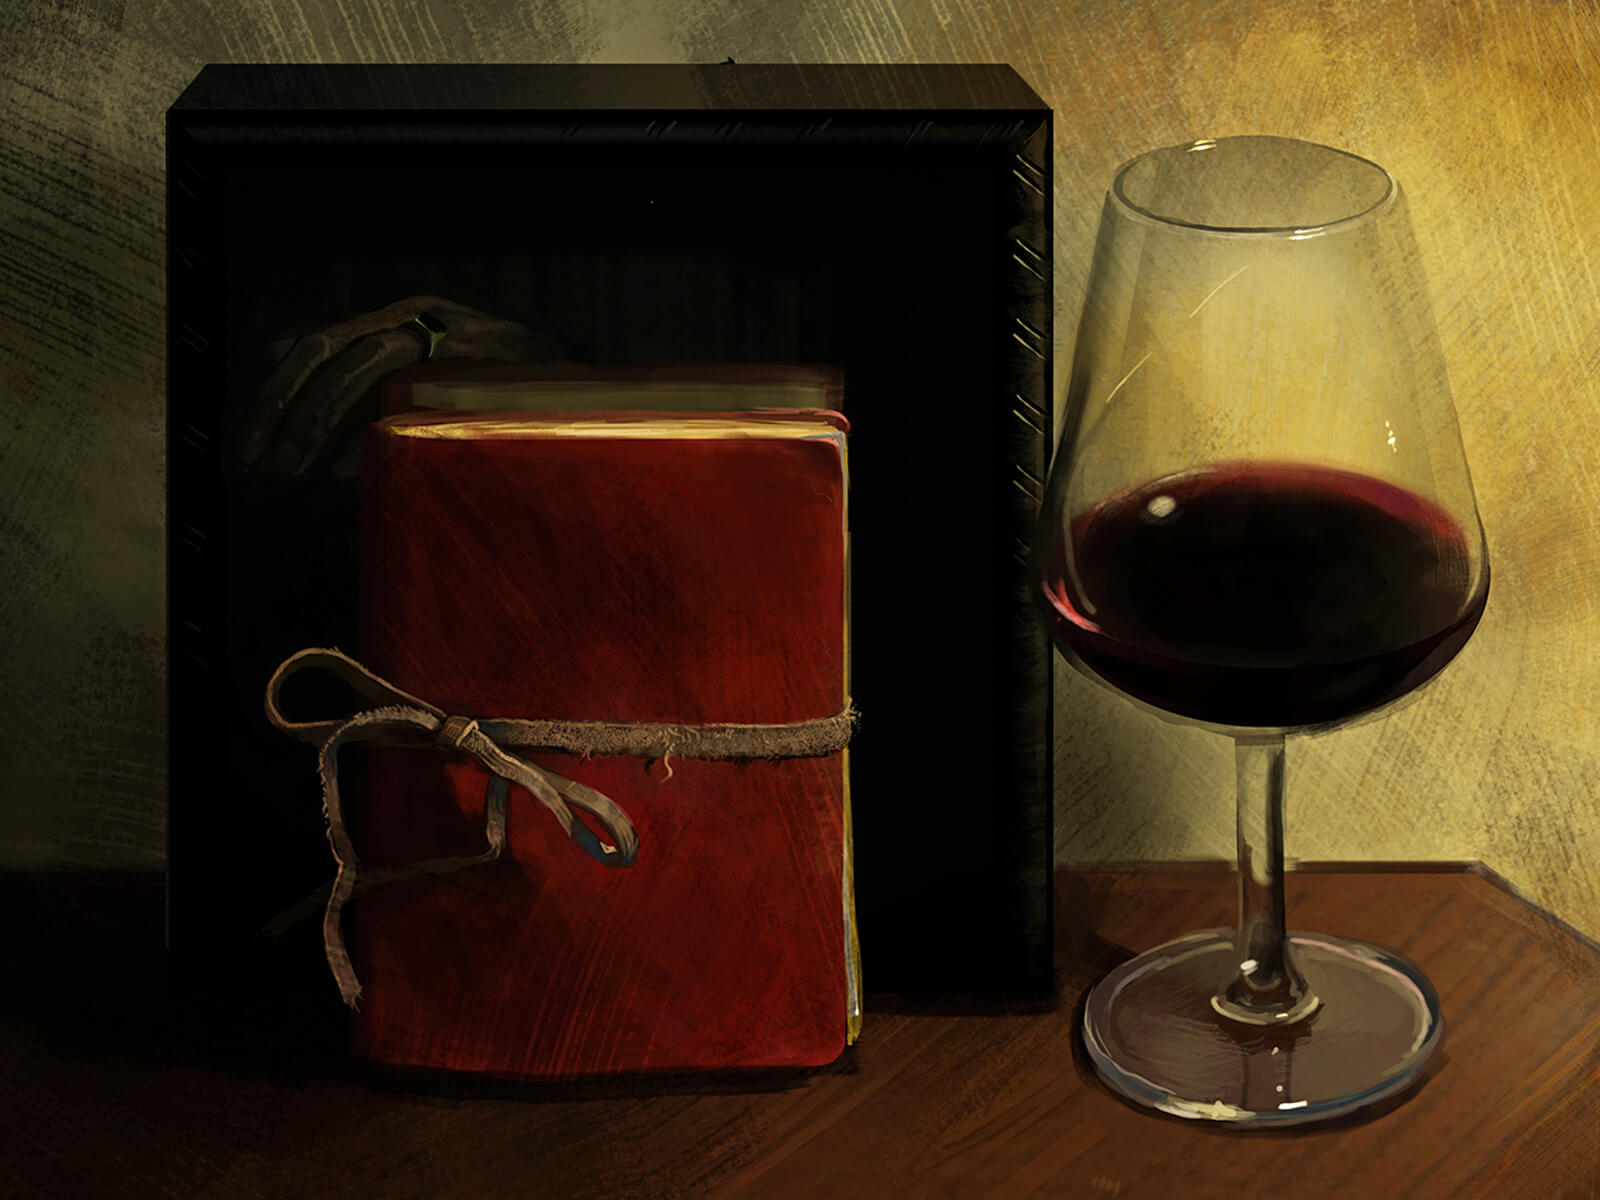 still-life traditional painting of a red book tied closed with a ribbon and a glass of wine